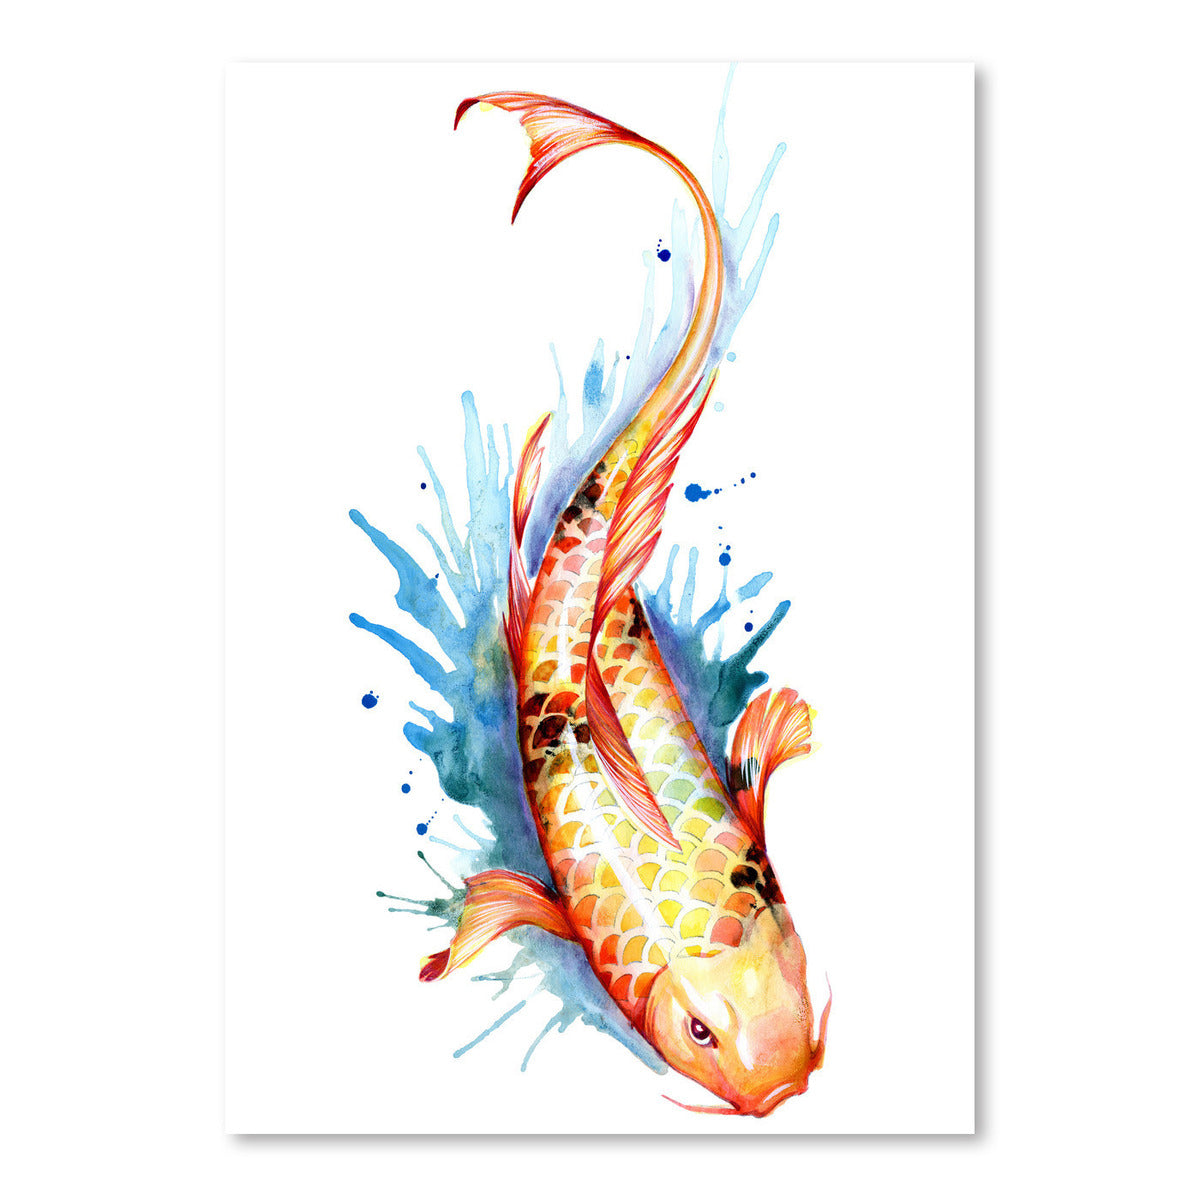 Koi Fish 2 by Sam Nagel Art Print - Art Print - Americanflat